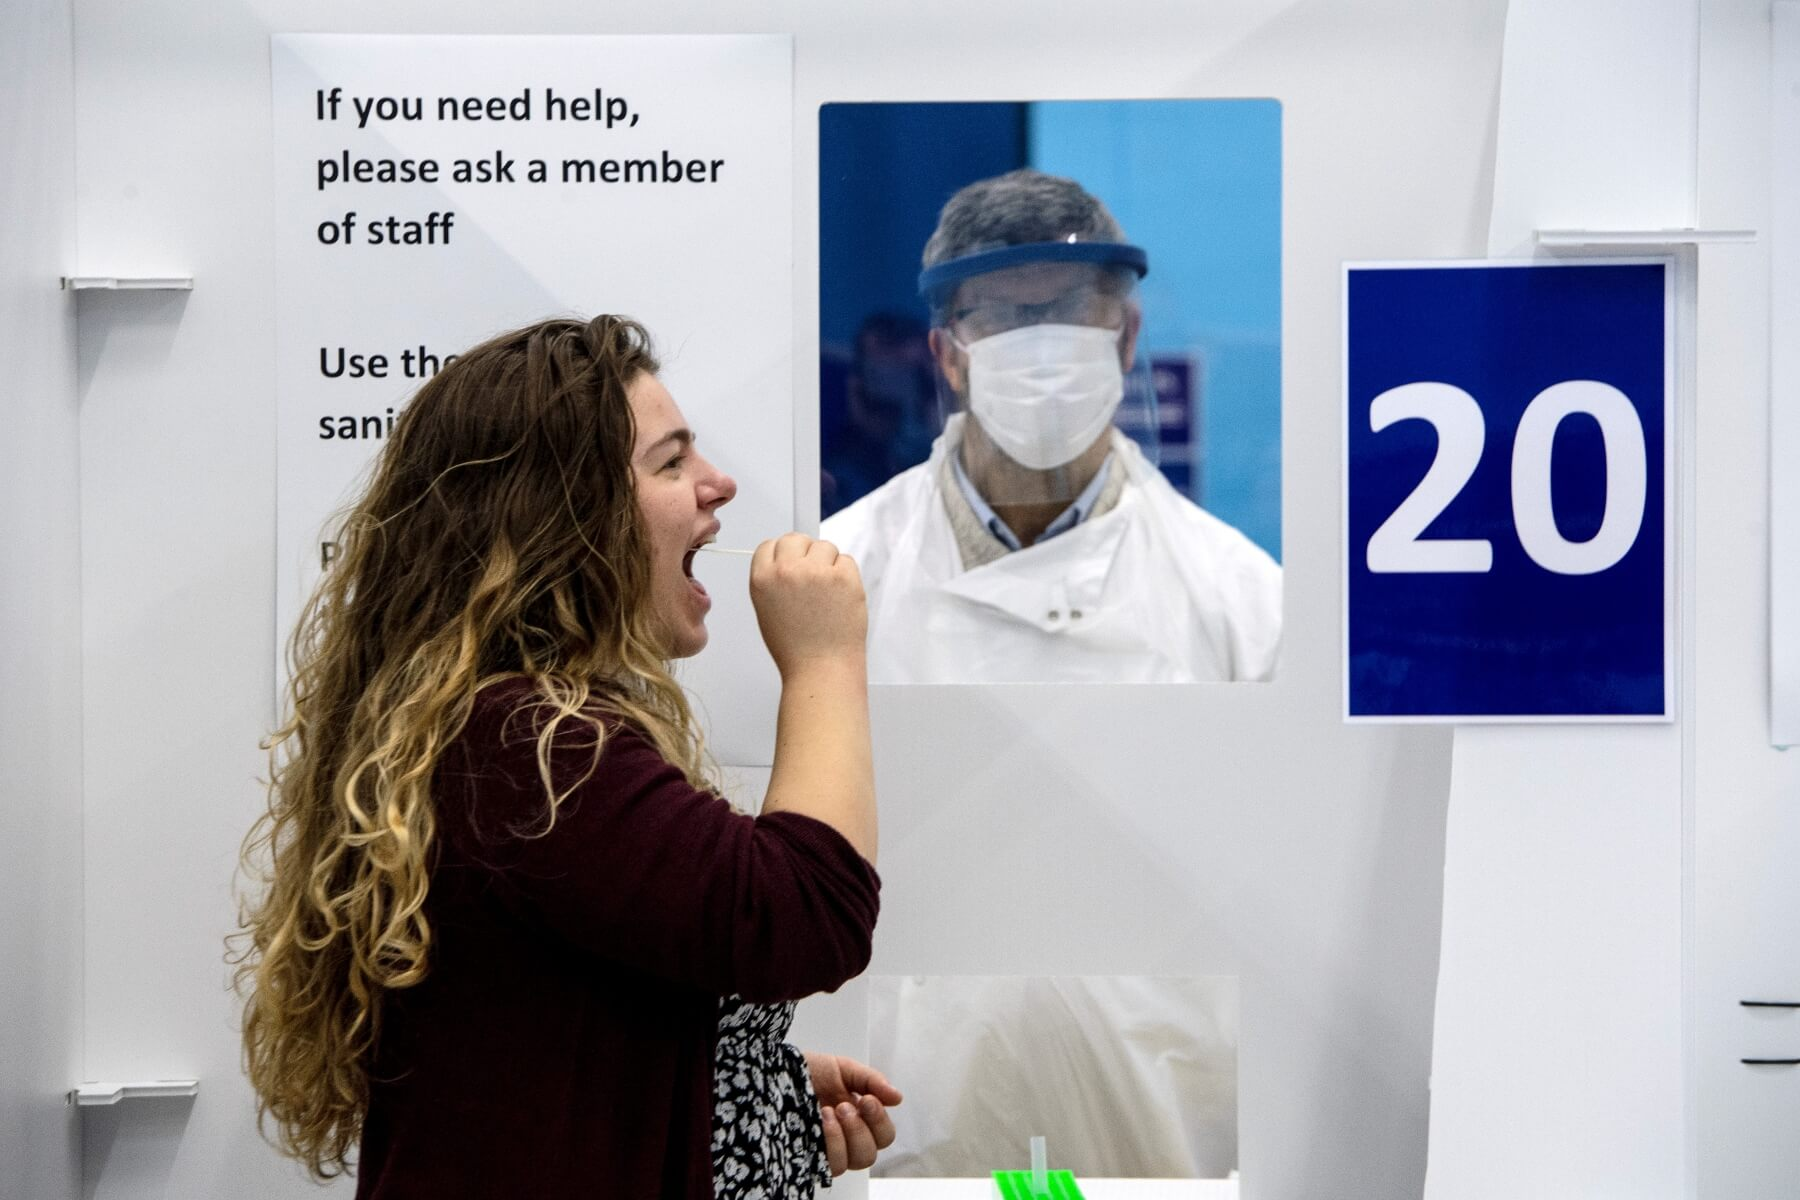 These UK unis are helping to cover quarantine costs